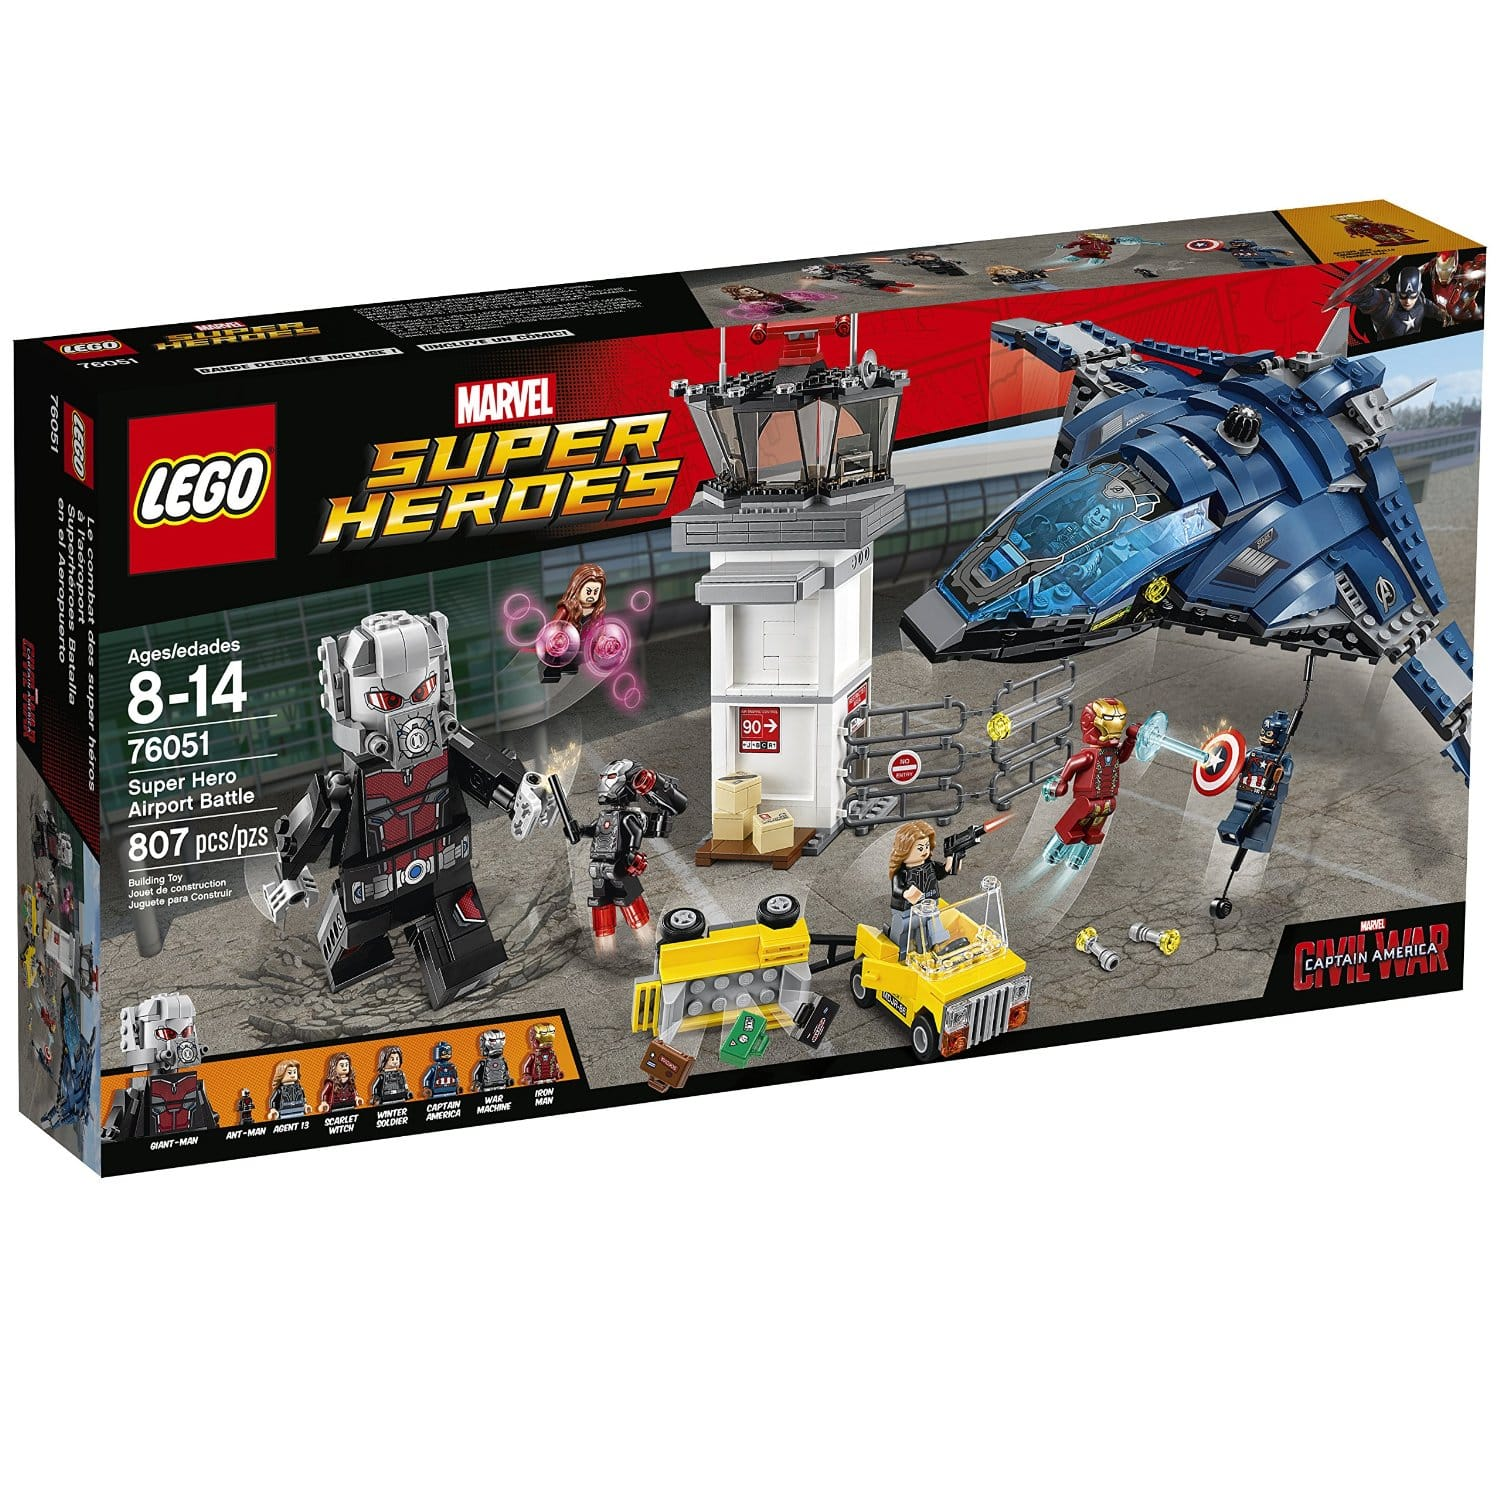 [Amazon] Lego Marvel Super Heroes sets discounted ~ 20%